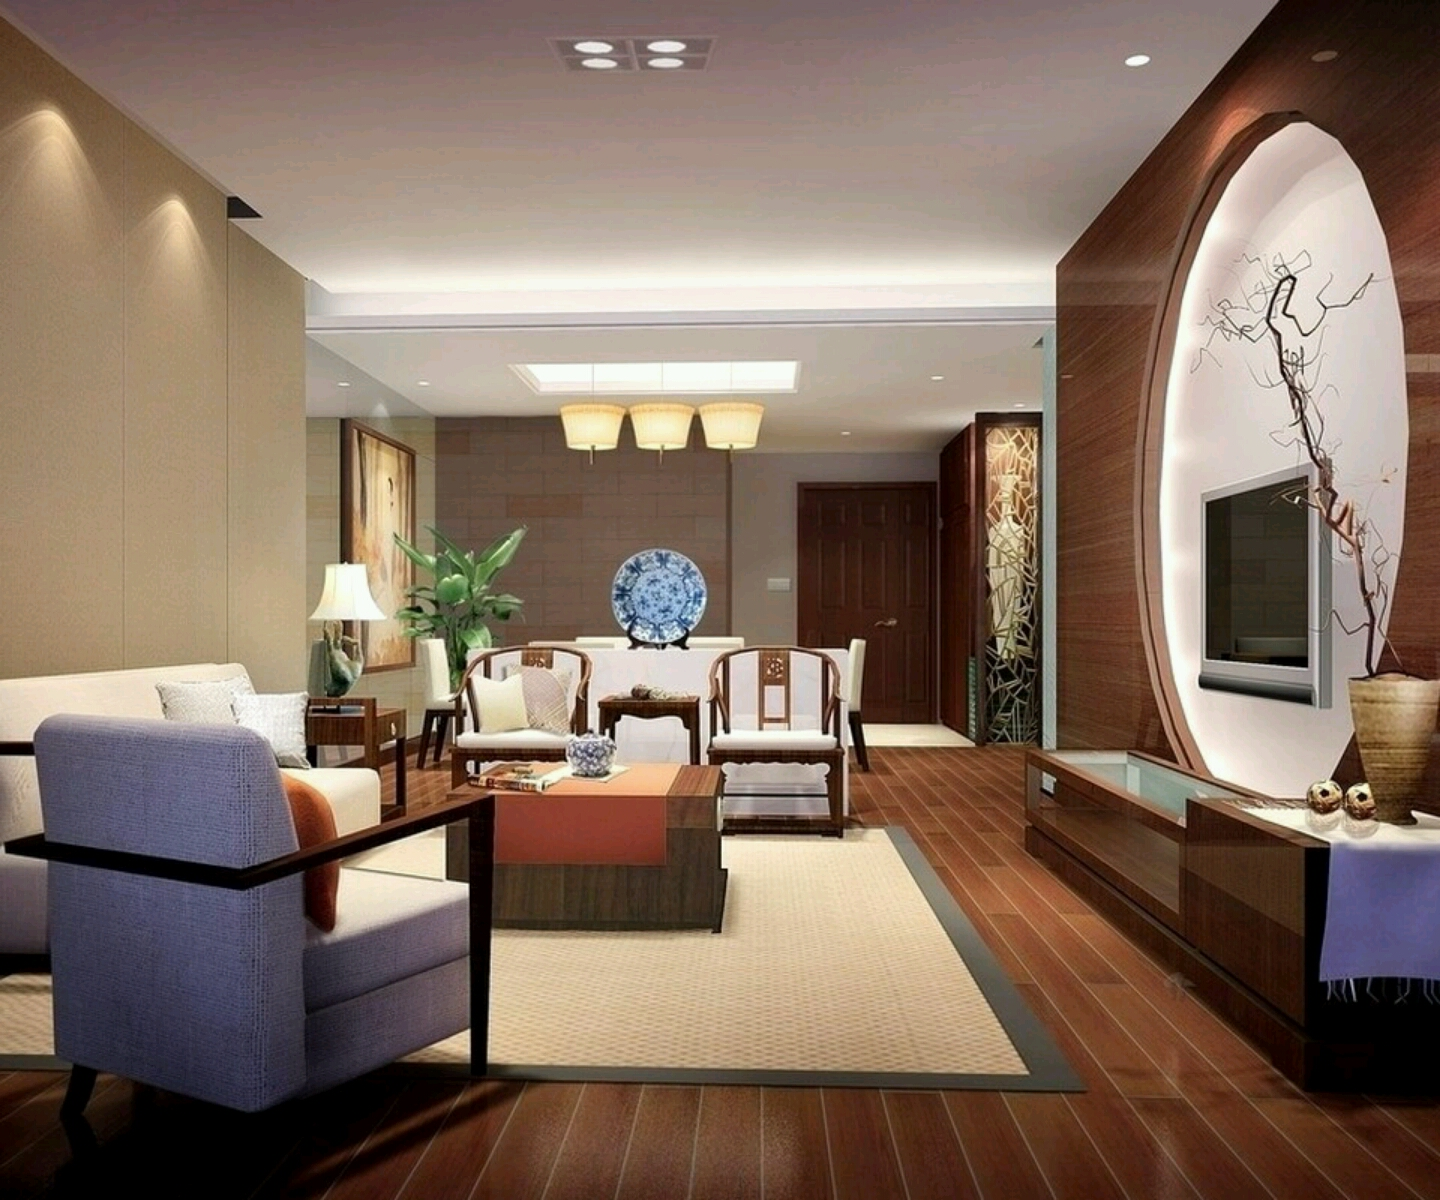 Luxury homes interior decoration living room designs ideas Interior decoration for living room